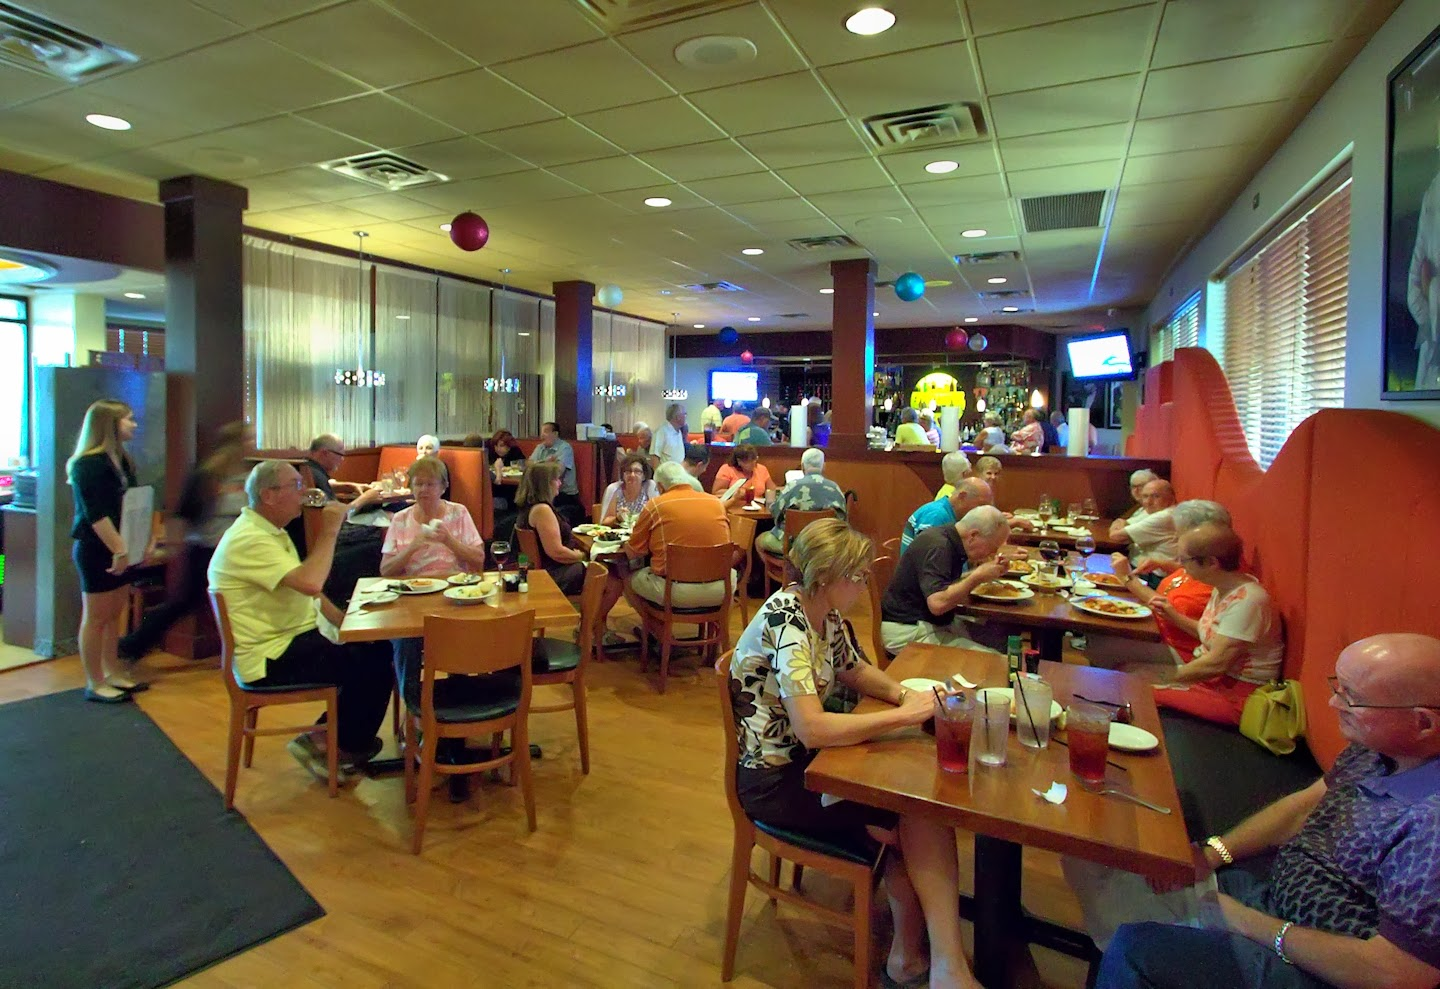 Southwest Florida Forks Happy Hour At Two Meatballs In The Kitchen